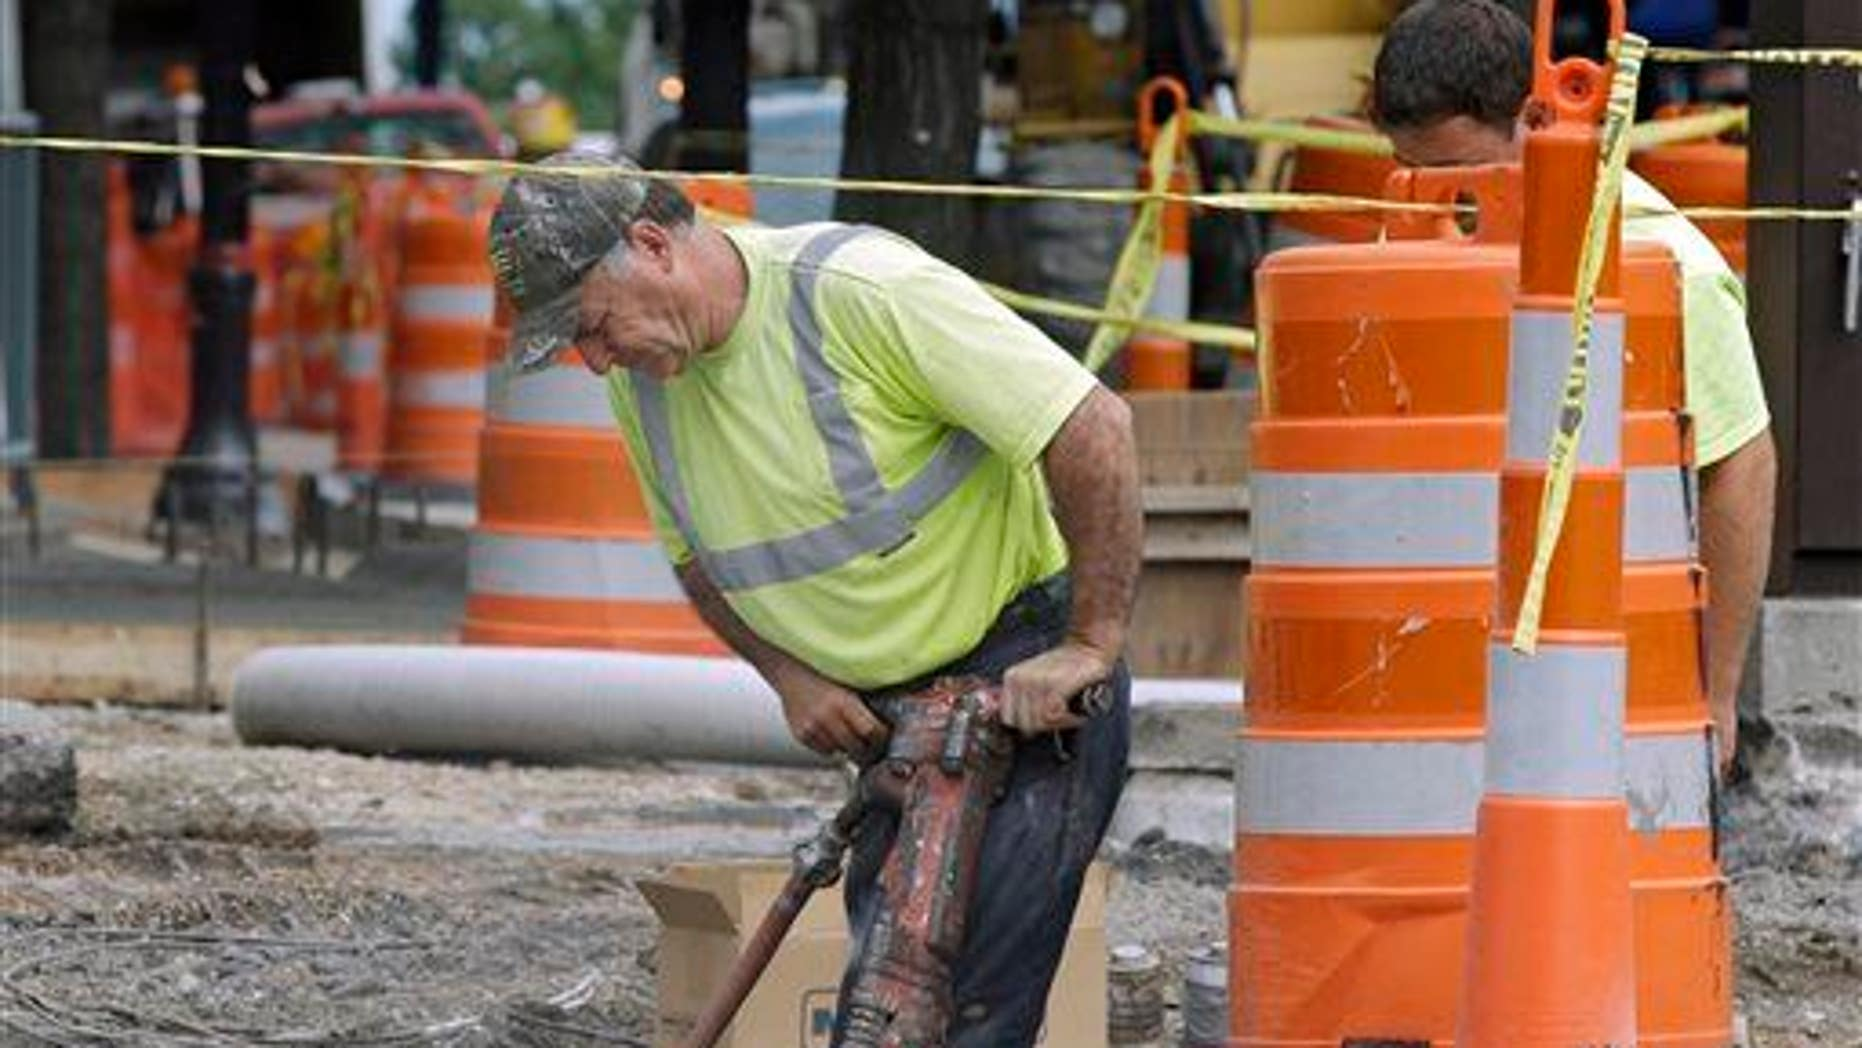 We imagine sufferers would steer clear of jackhammers.